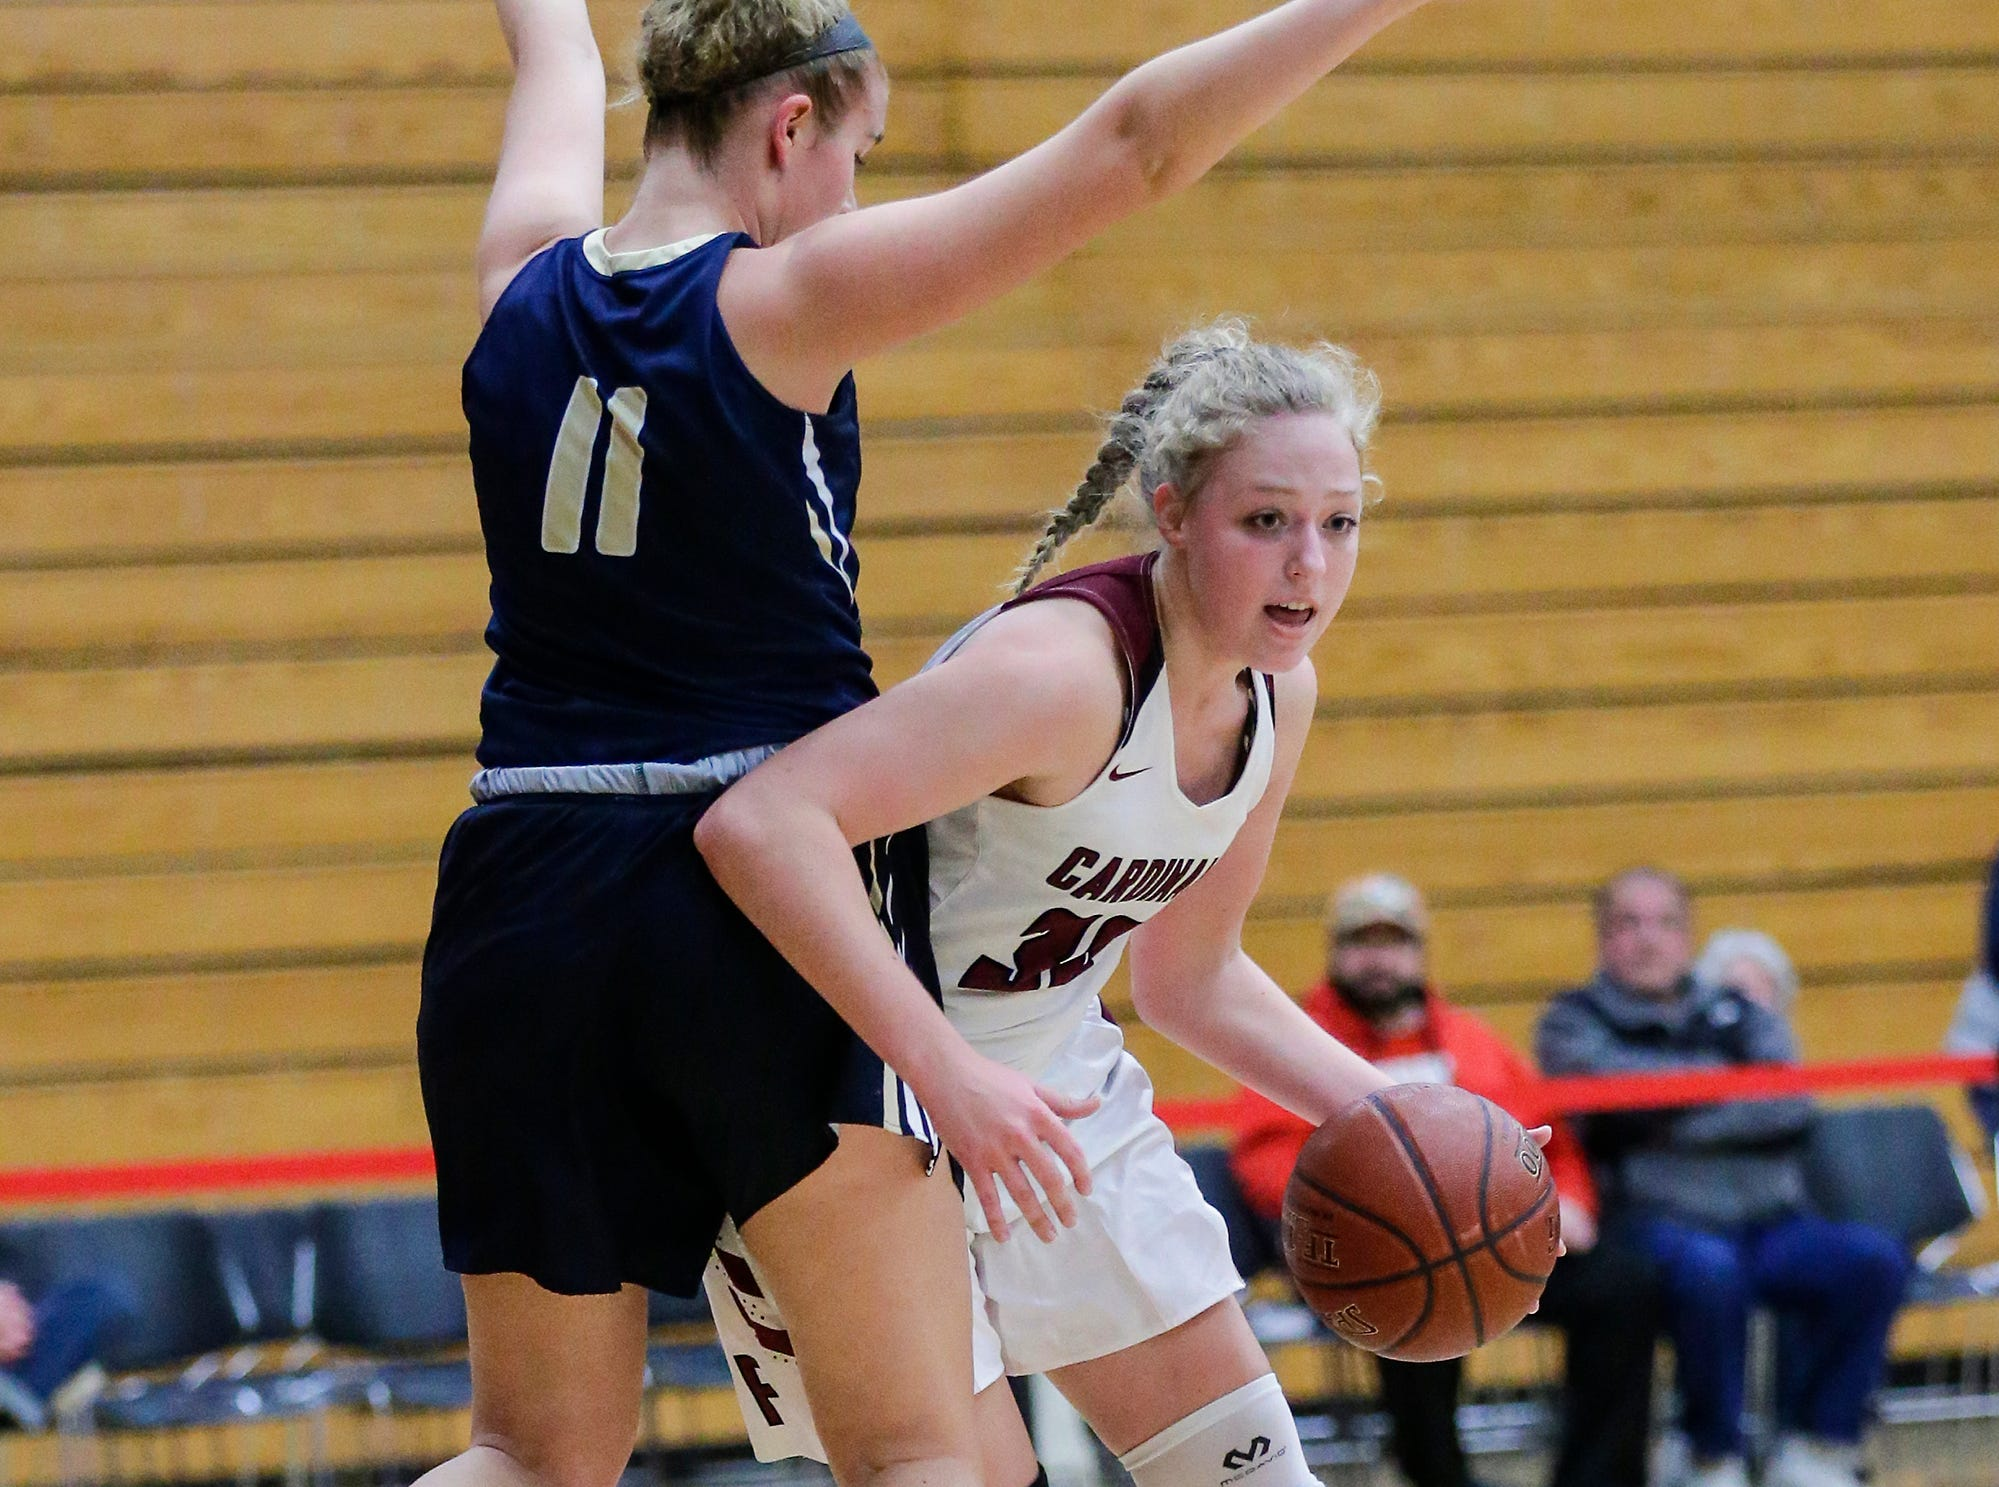 Fond du Lac High School girls basketball's Madison Dille dribbles that ball past Appleton North High School's Emma Erickson during their game Tuesday, December 4, 2018 in Fond du Lac, Wisconsin. Doug Raflik/USA TODAY NETWORK-Wisconsin